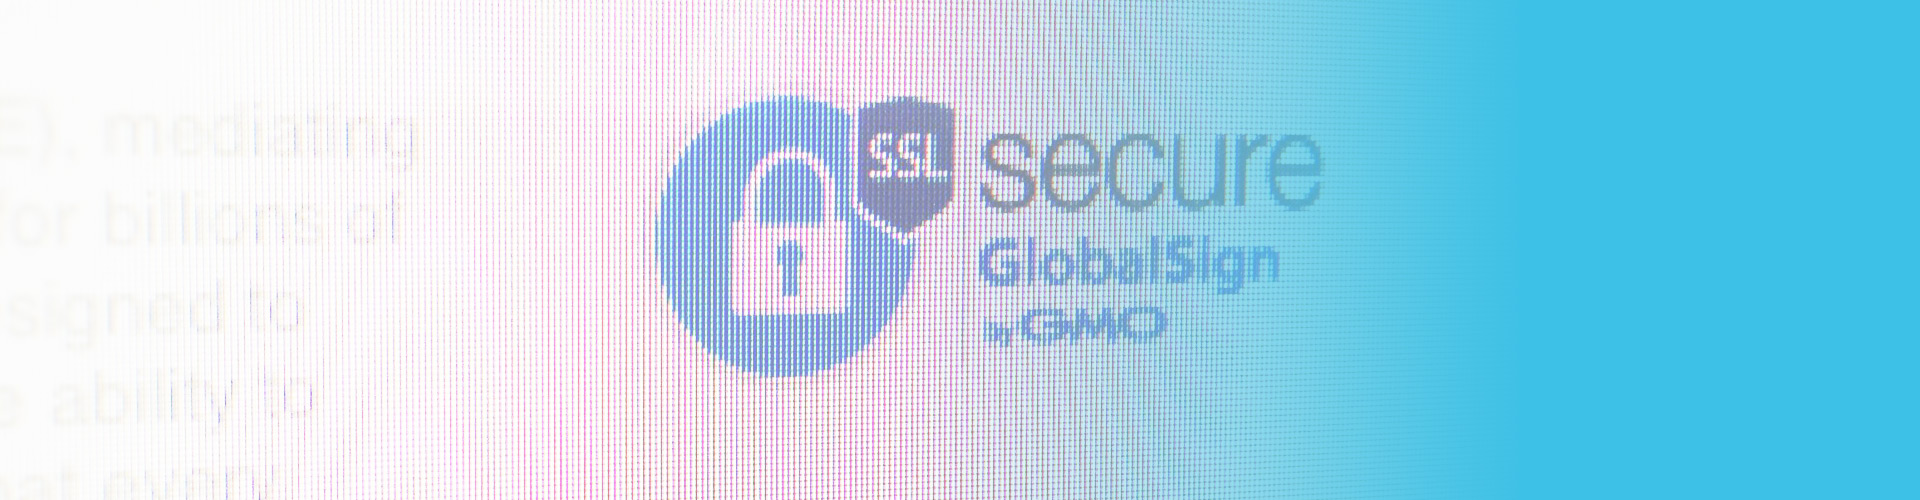 Globalsign ssl an interview with our ssl provider eurodns now offers ssl certificates they give customers the means to validate their websites and protect their online transactions xflitez Images